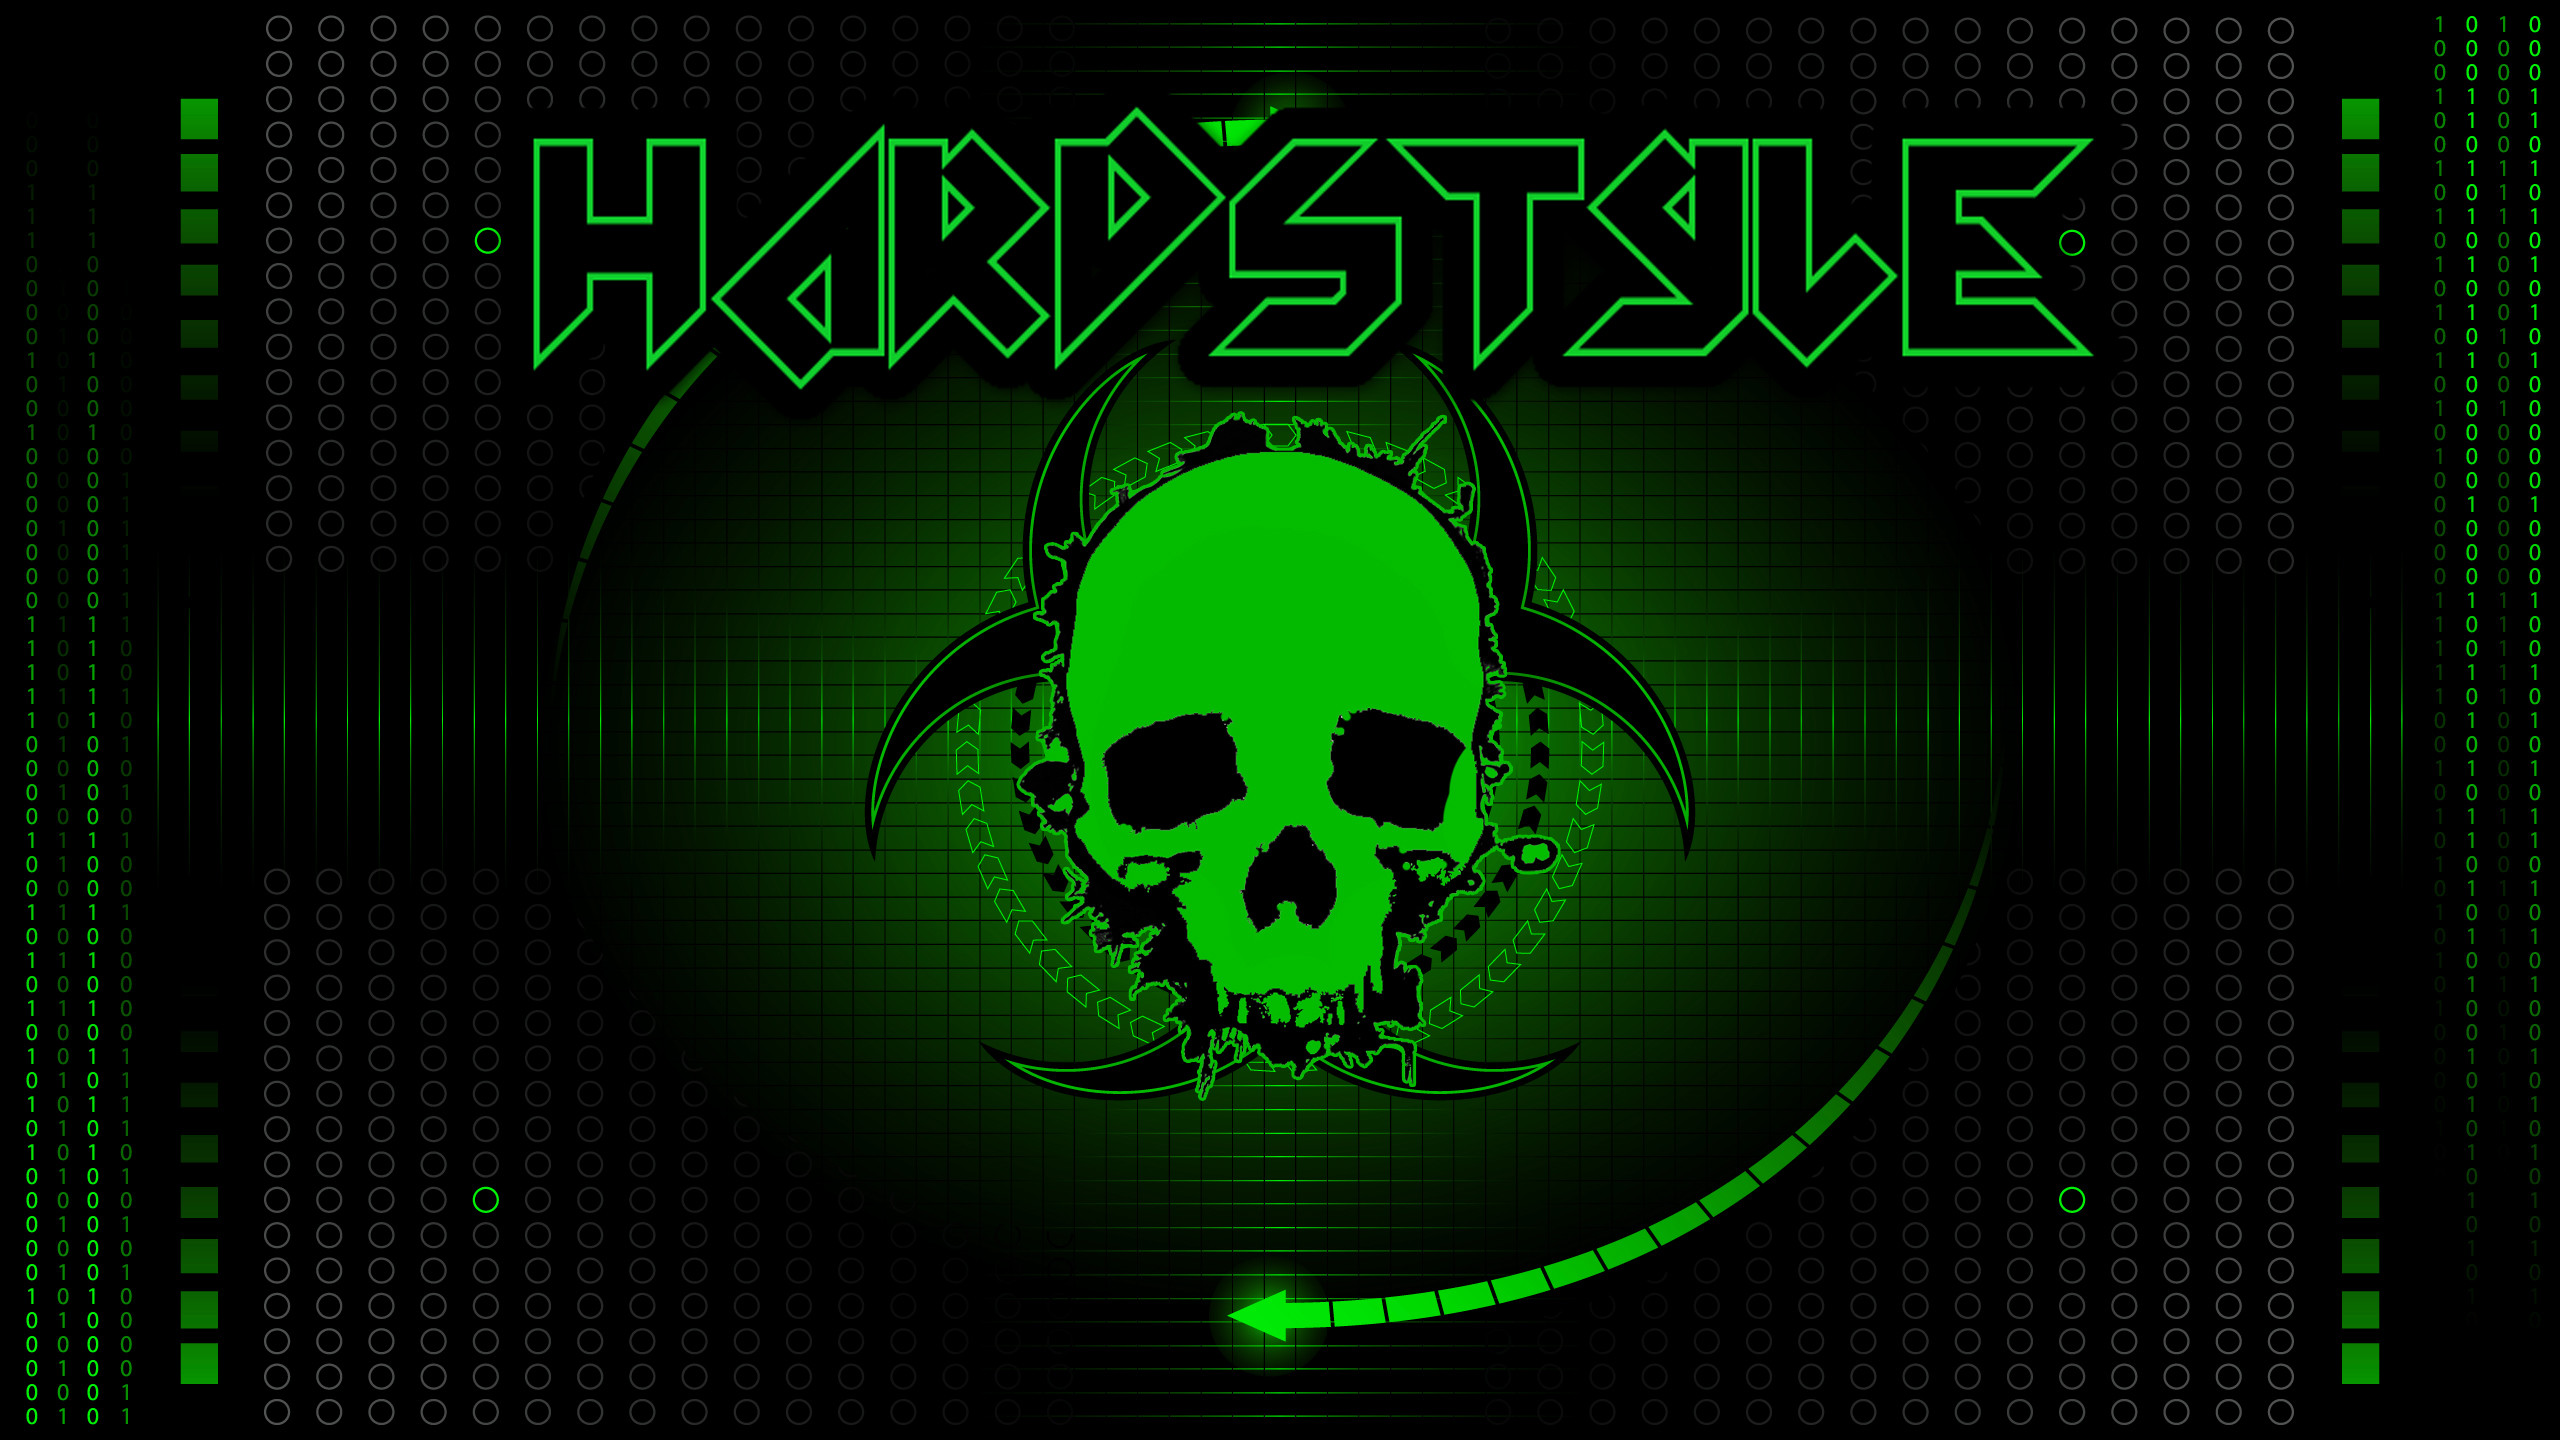 Res: 2560x1440, Hardstyle Wallpaper Green Redone by thorpsy100 Hardstyle Wallpaper Green  Redone by thorpsy100